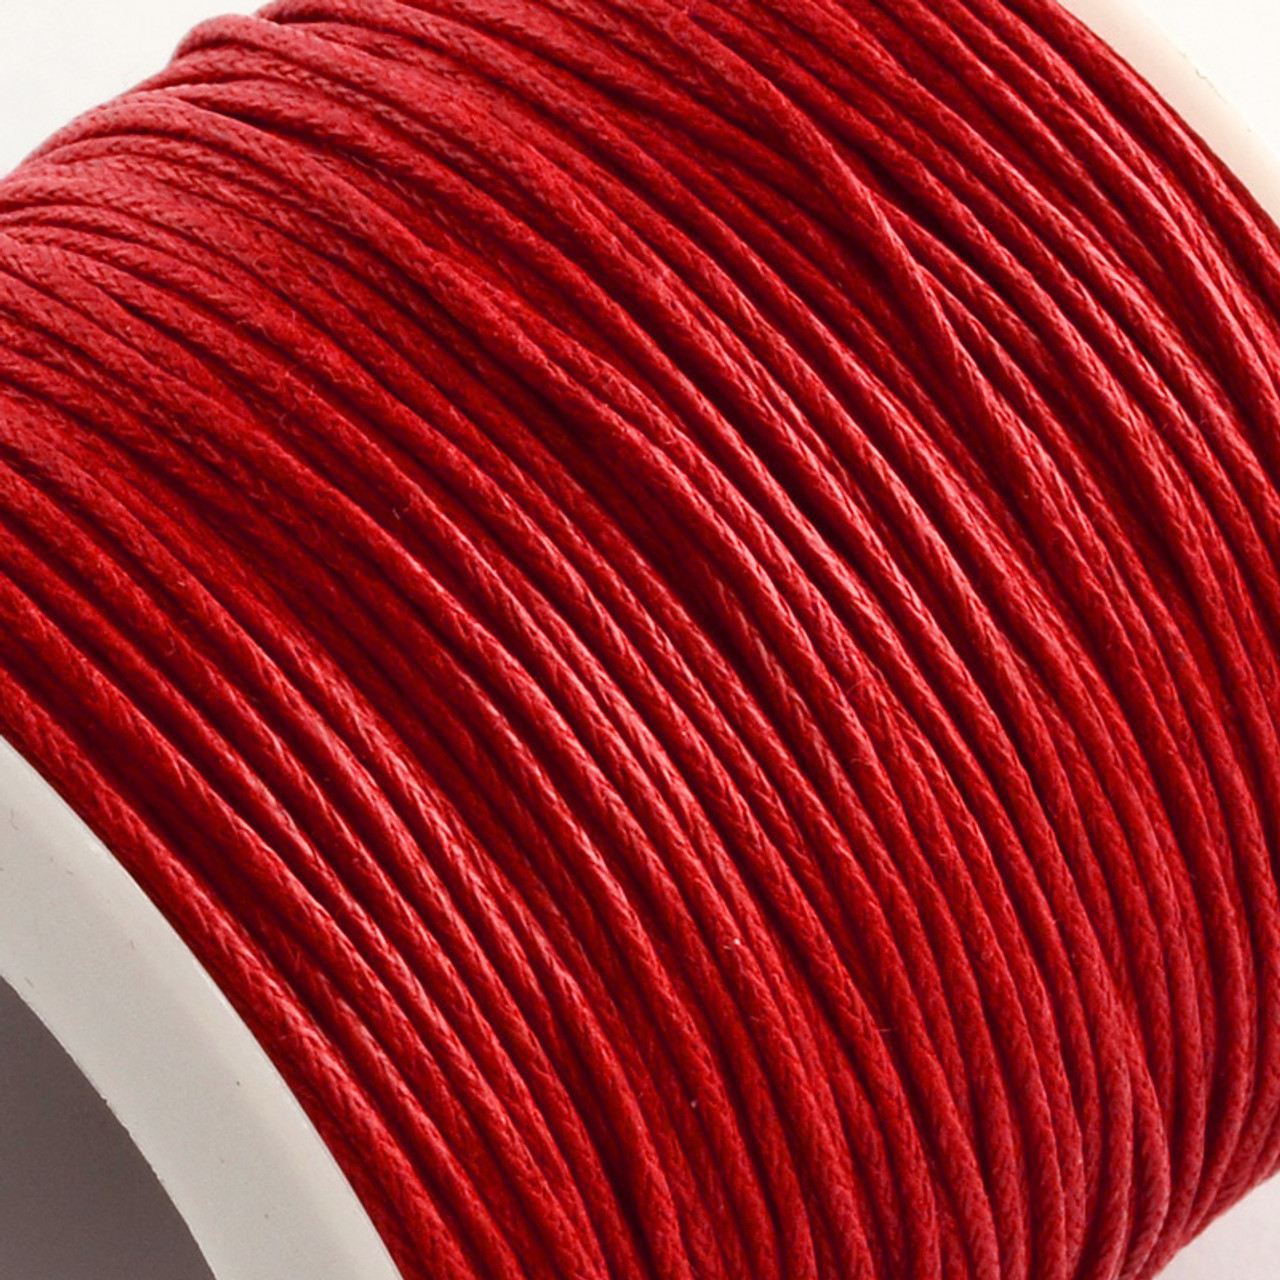 1mm Red Waxed Cotton Cord (5yds)